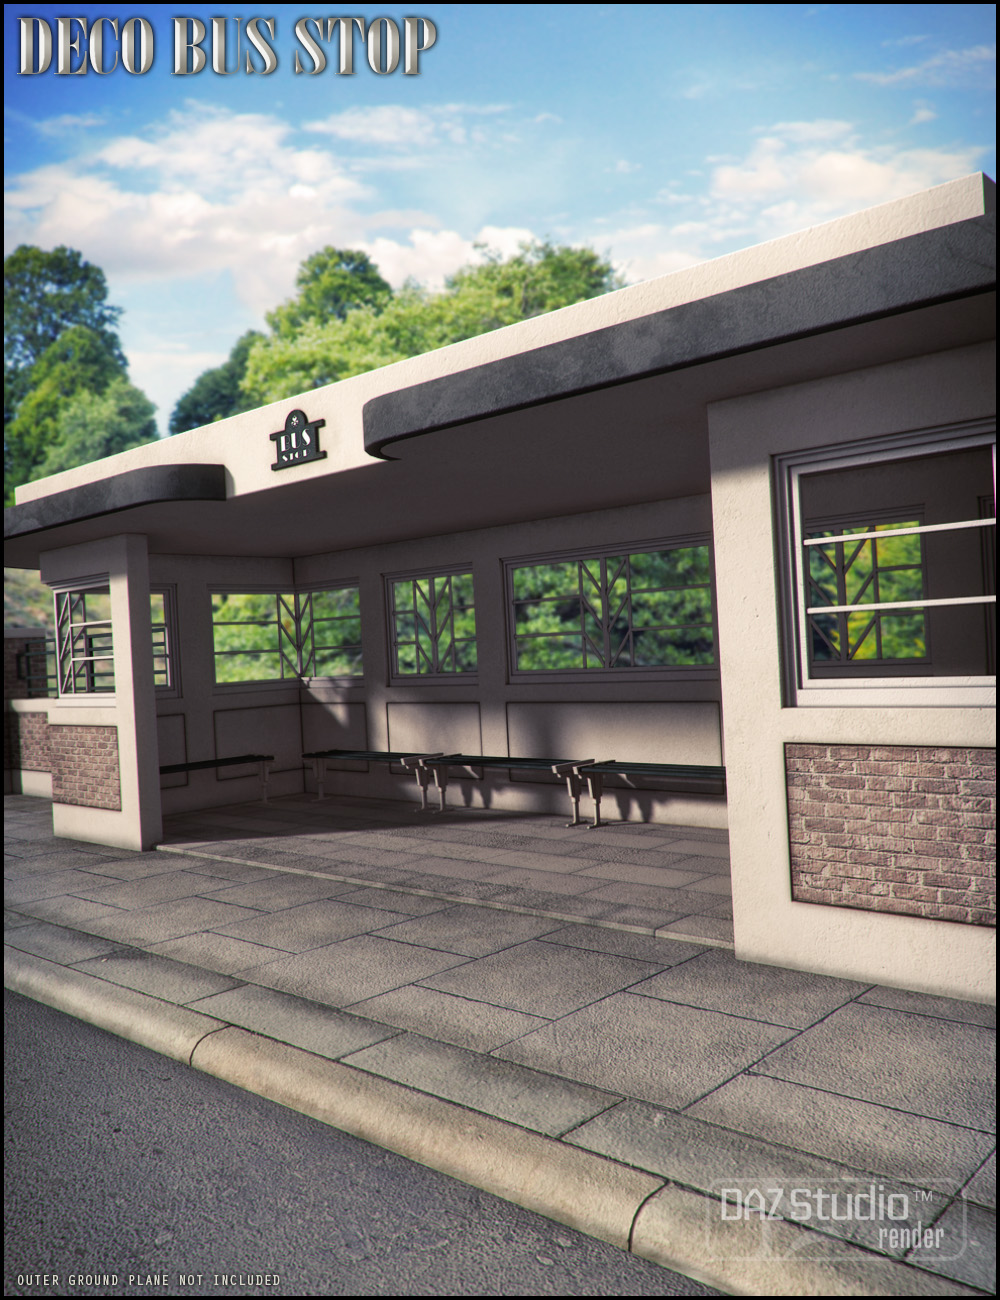 Deco Bus Stop by: Jack Tomalin, 3D Models by Daz 3D